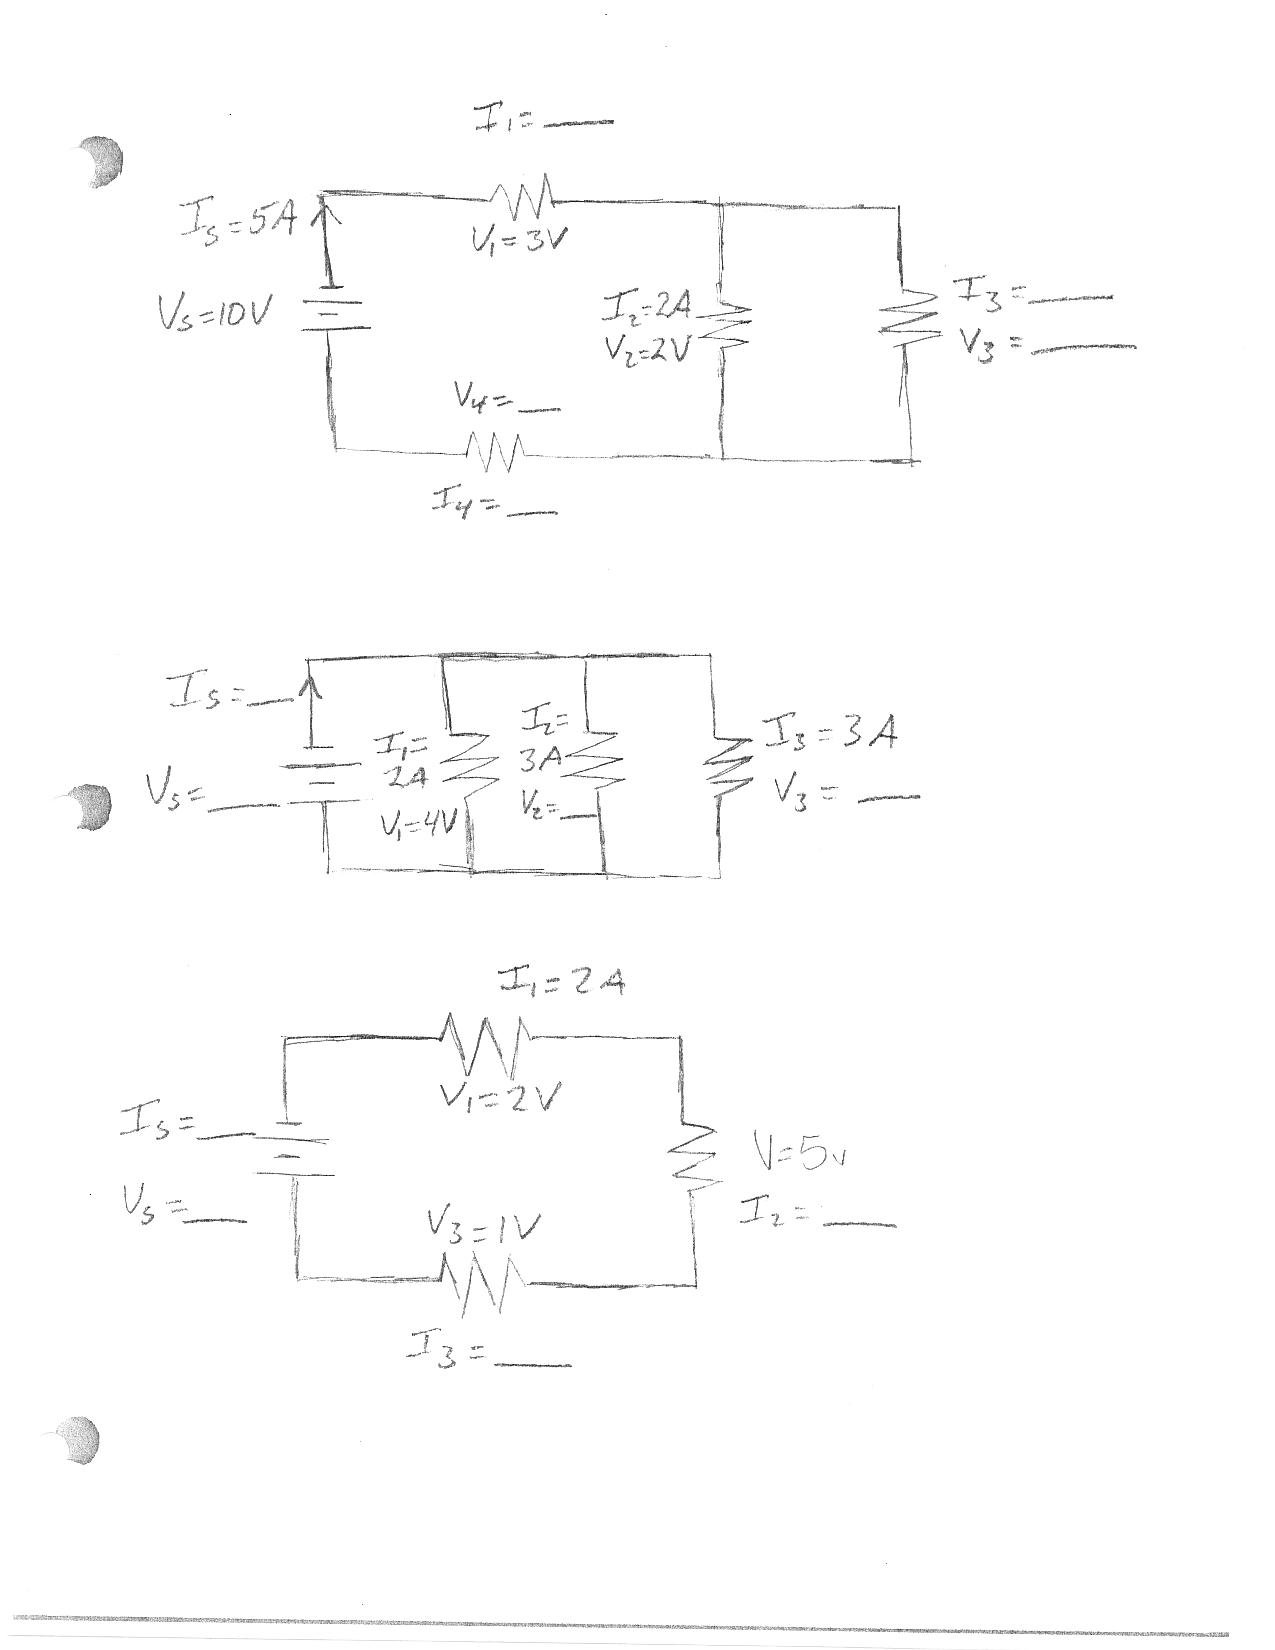 hight resolution of nov 18th practice drawing circuits for your quiz tomorrow circuit construction review and summary note nov 19th circuit drawing quiz calculations with